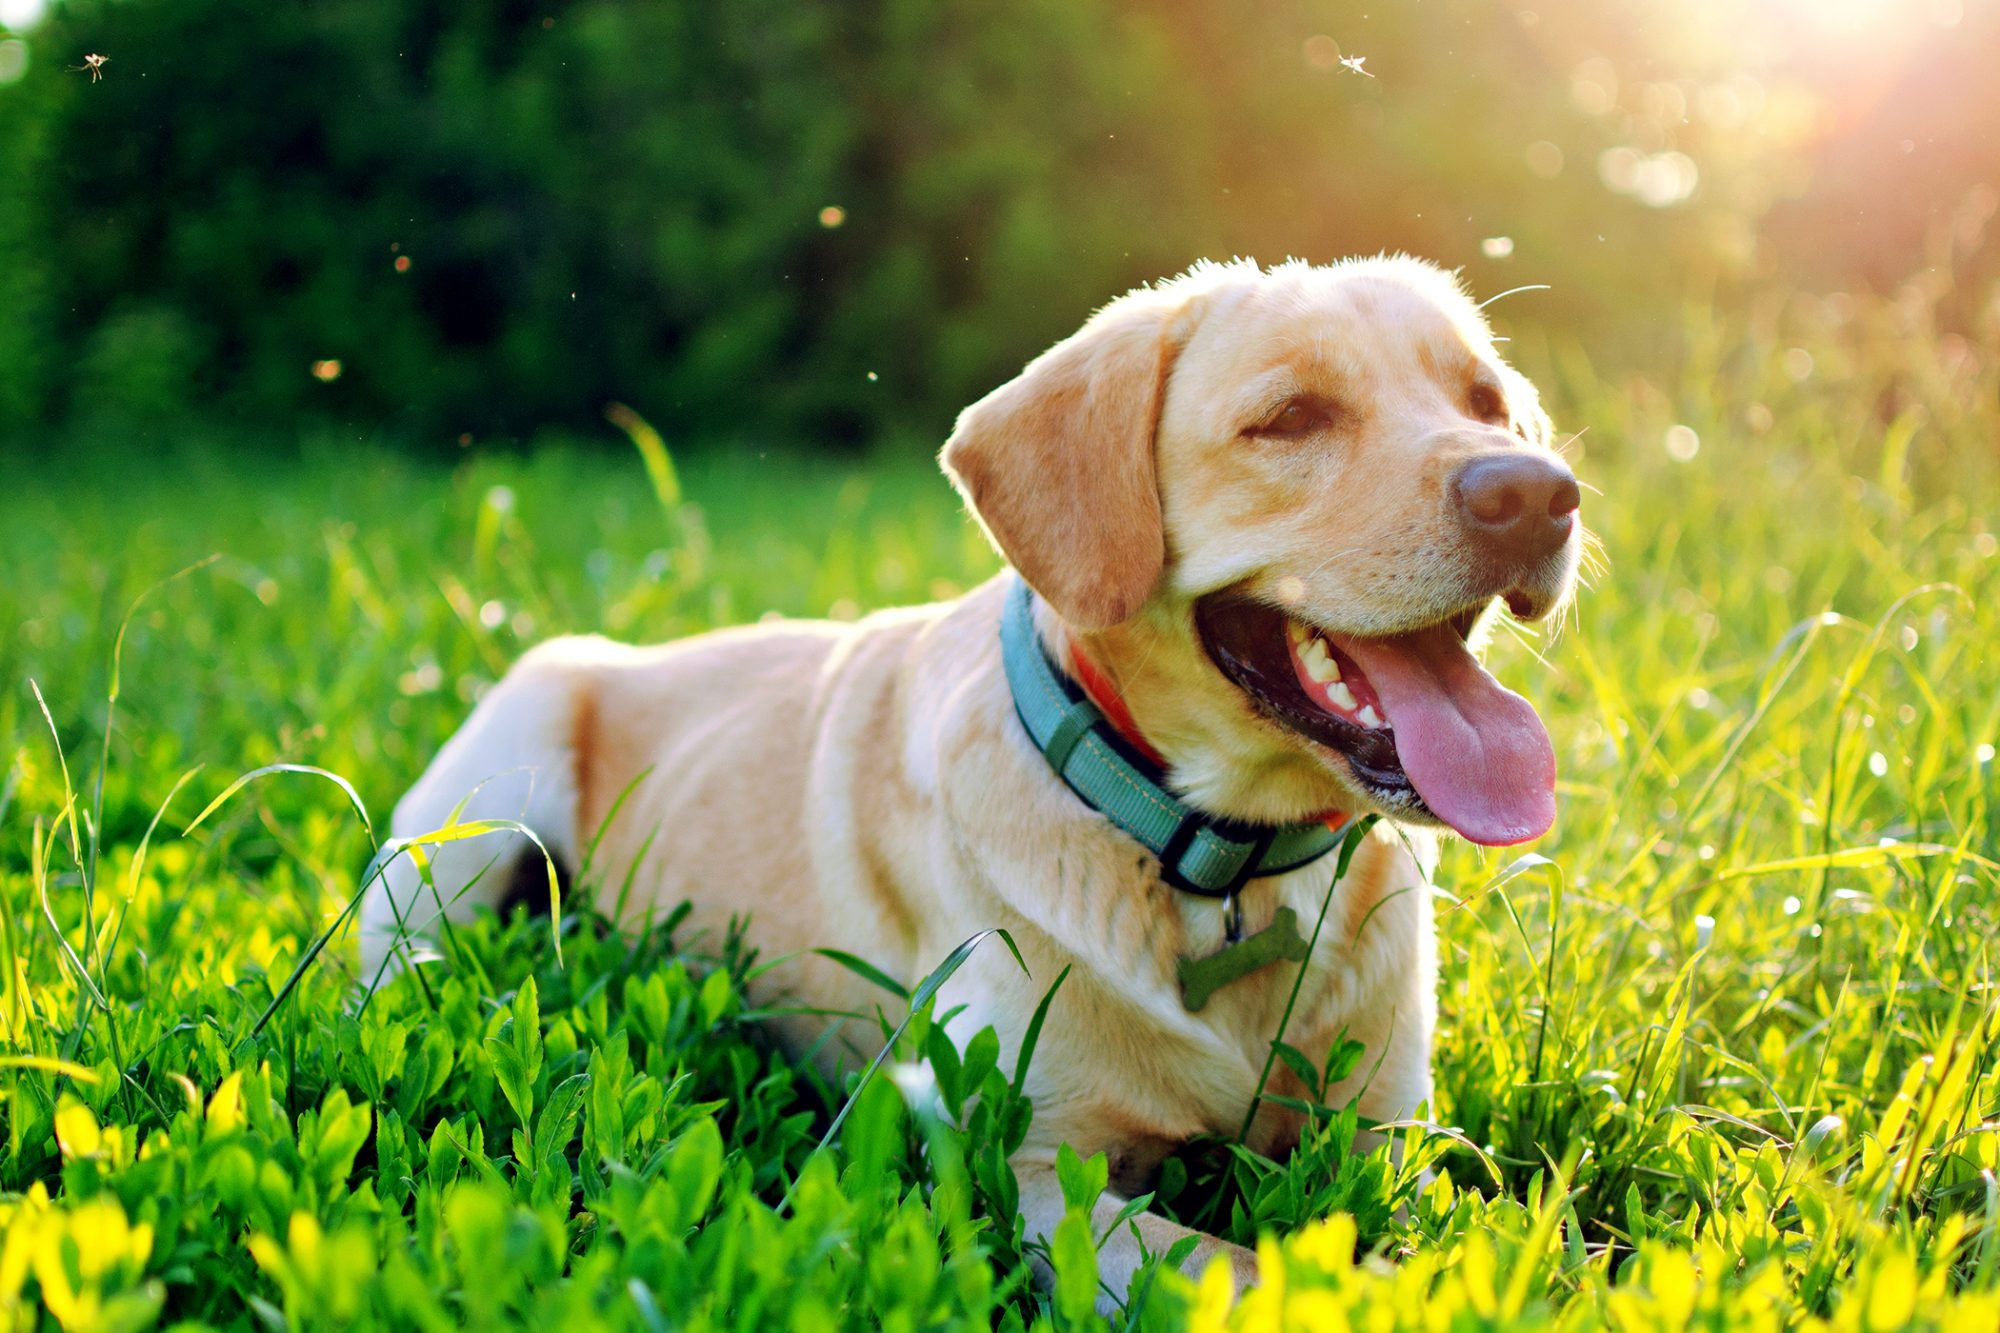 Yellow lab lays happily in long grass during golden hour